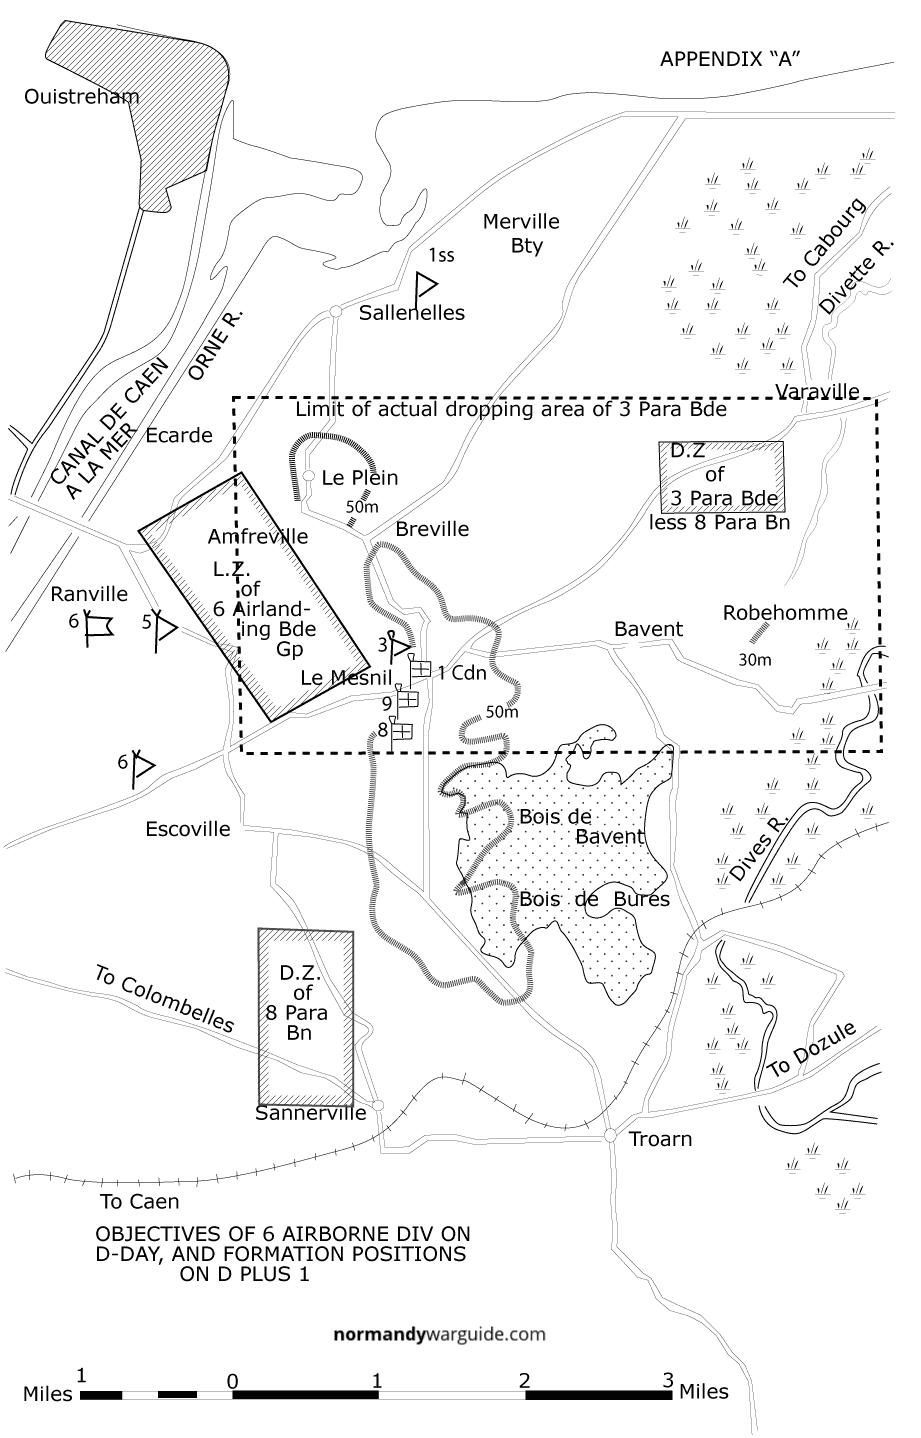 Map trace showing Objectives of 6 Airborne Div on D-Day, and formation positions on D plus 1